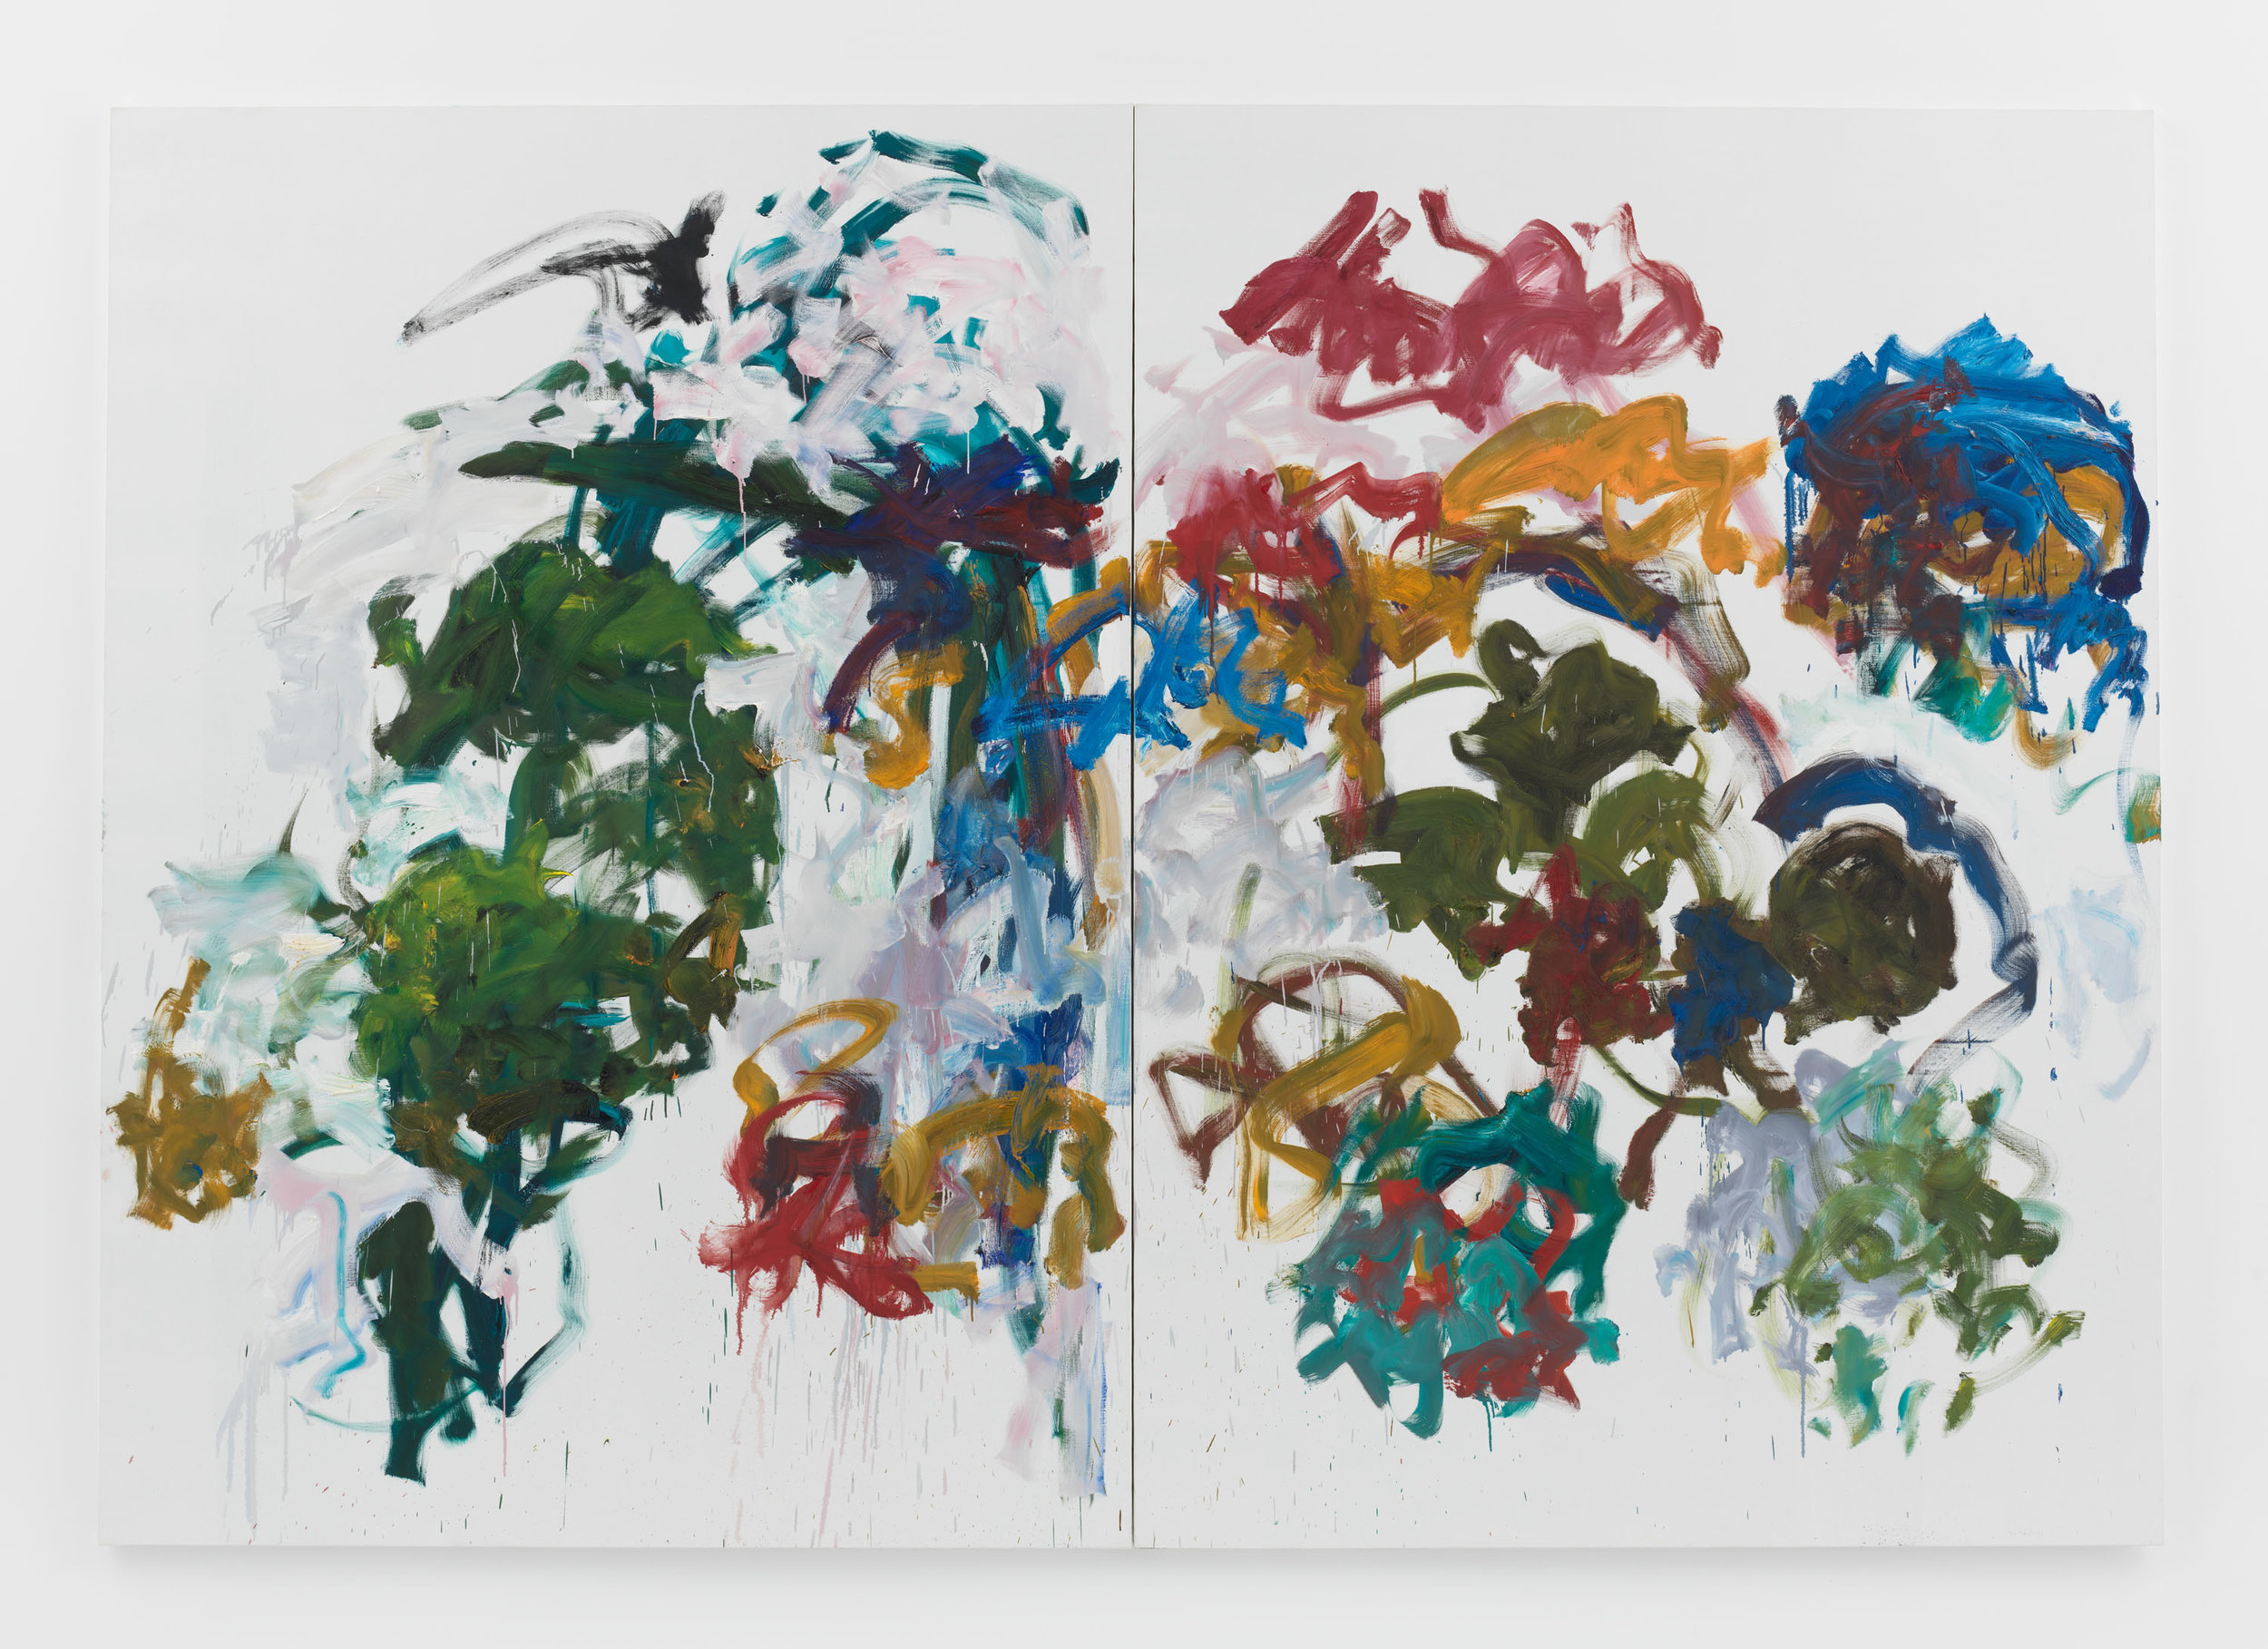 Joan Mitchell,   Sunflowers , 1990-1991, Oil on canvas in two (2) parts, 110 1/4 x 157 1/2 inches, 280 x 400.1 cm